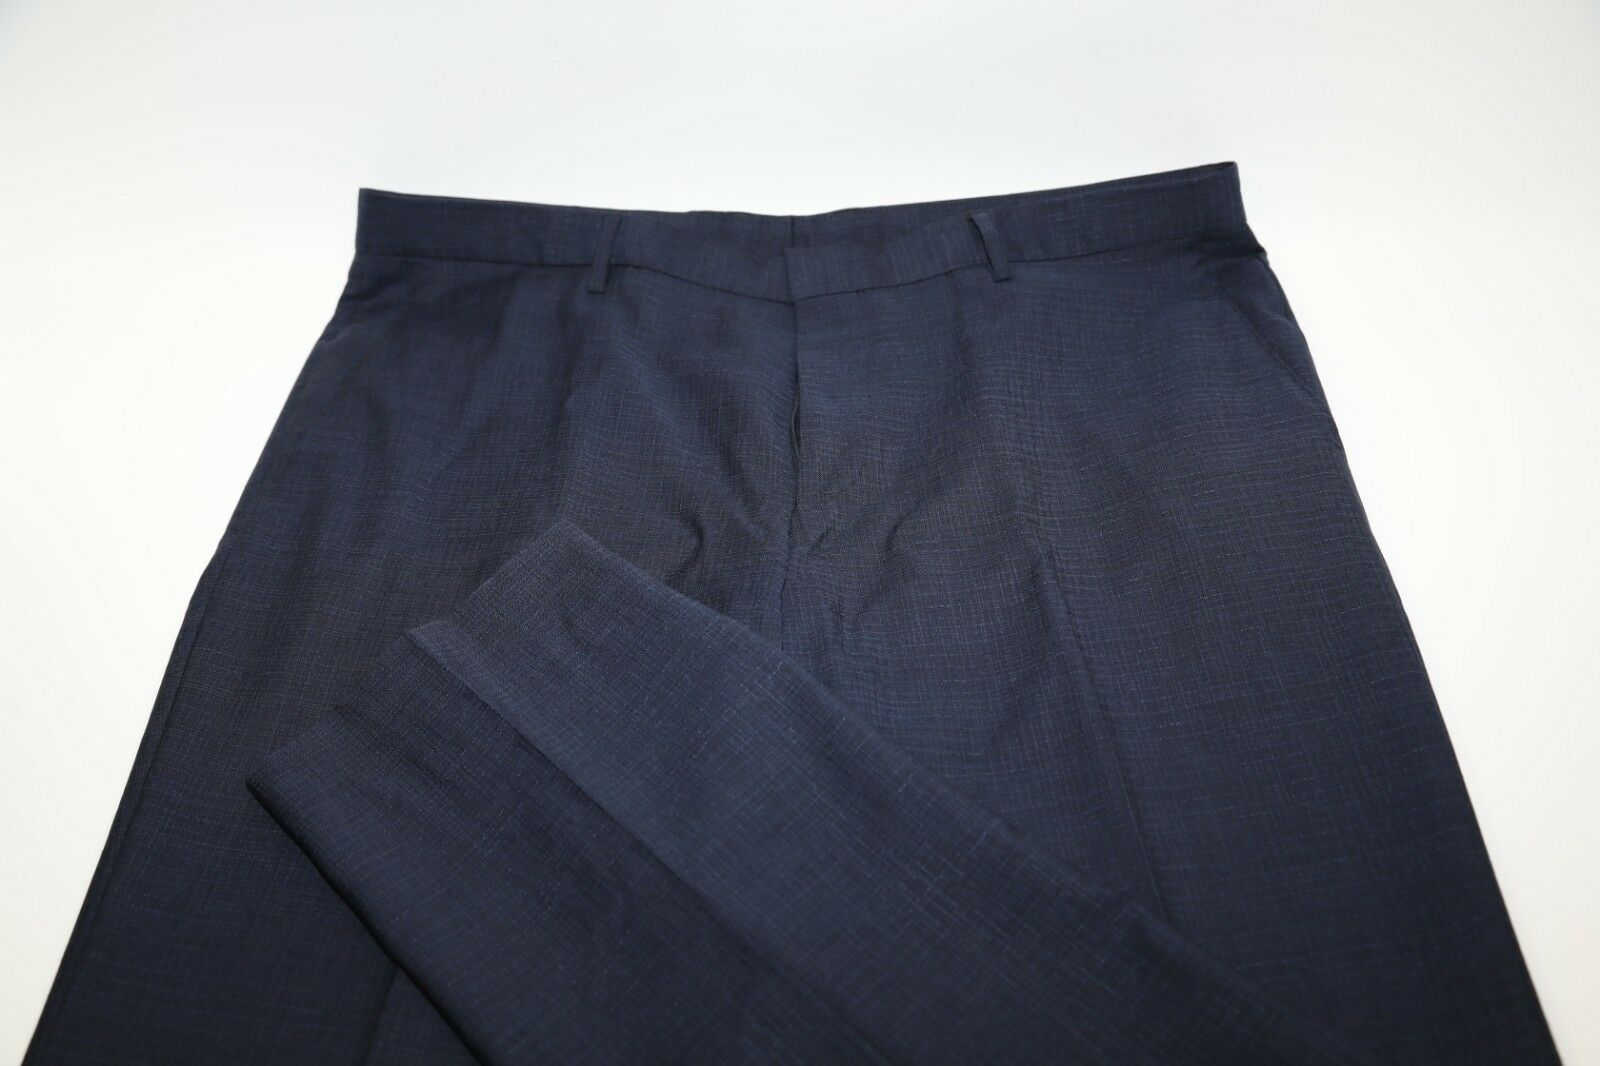 Hugo Boss bluee 100% Wool Flat Front Pants Size 38